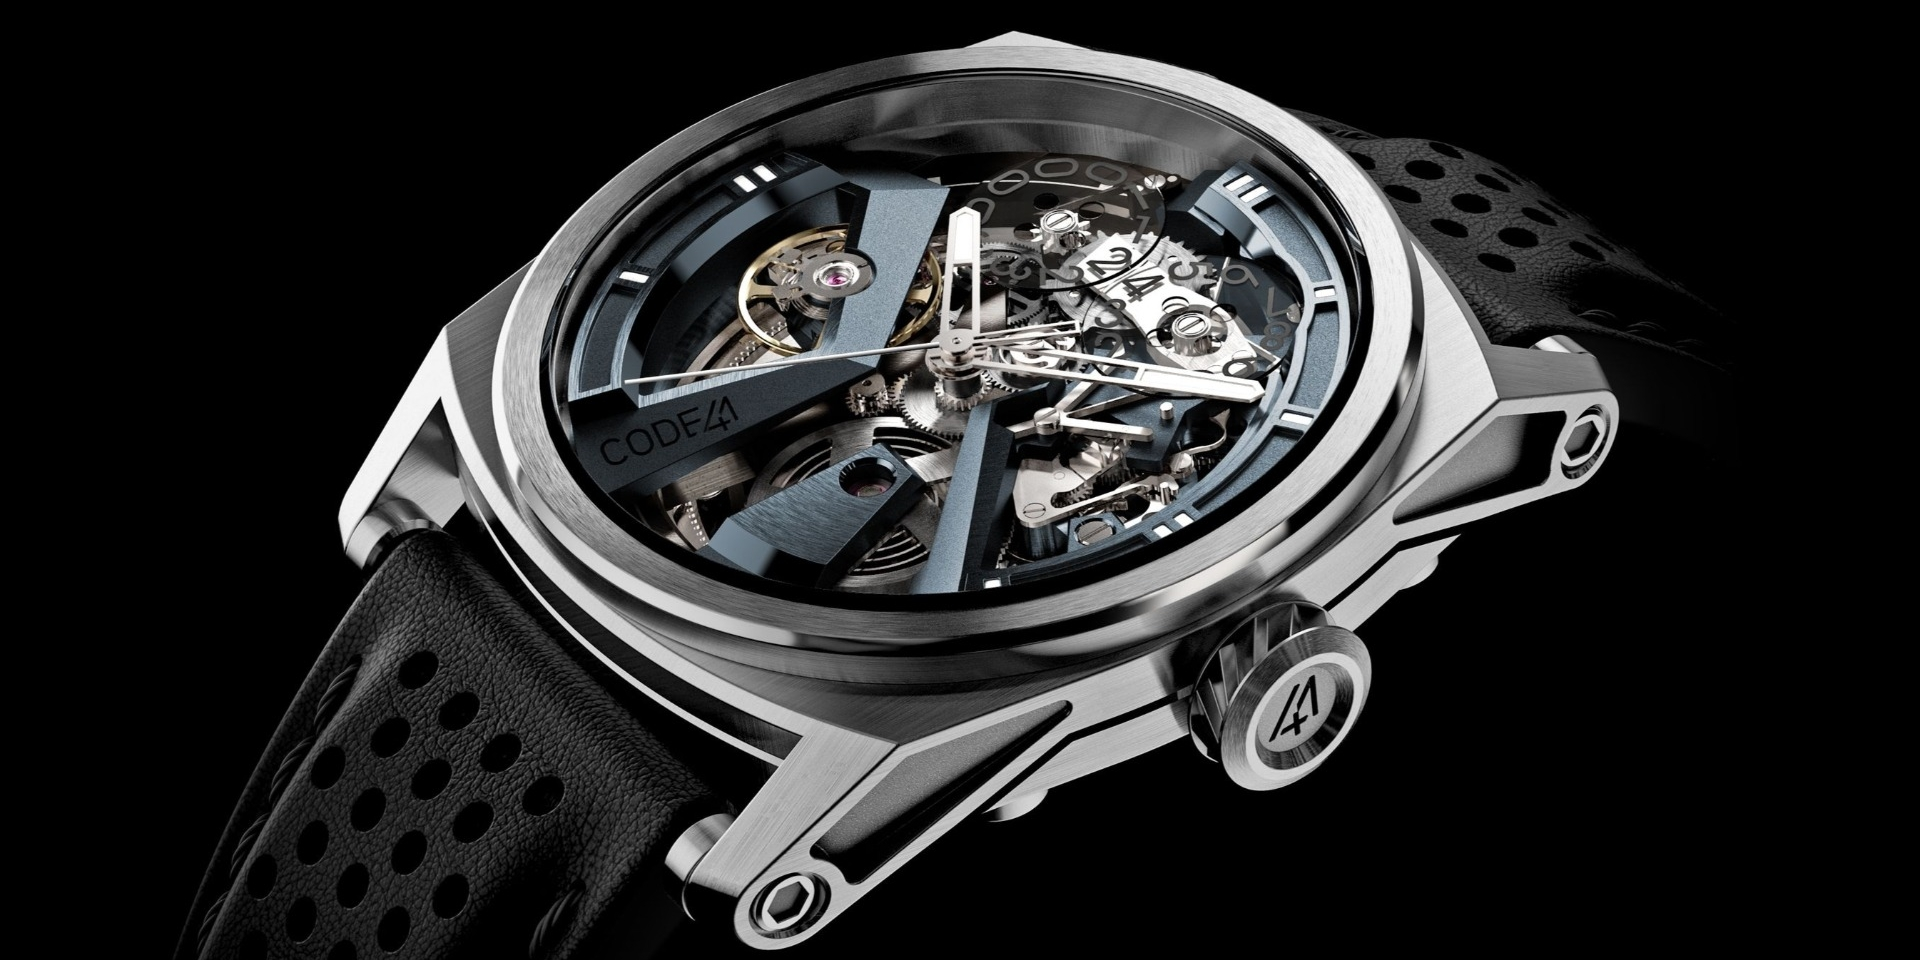 Watches from CODE41 – Haute Horlogerie for everyone?